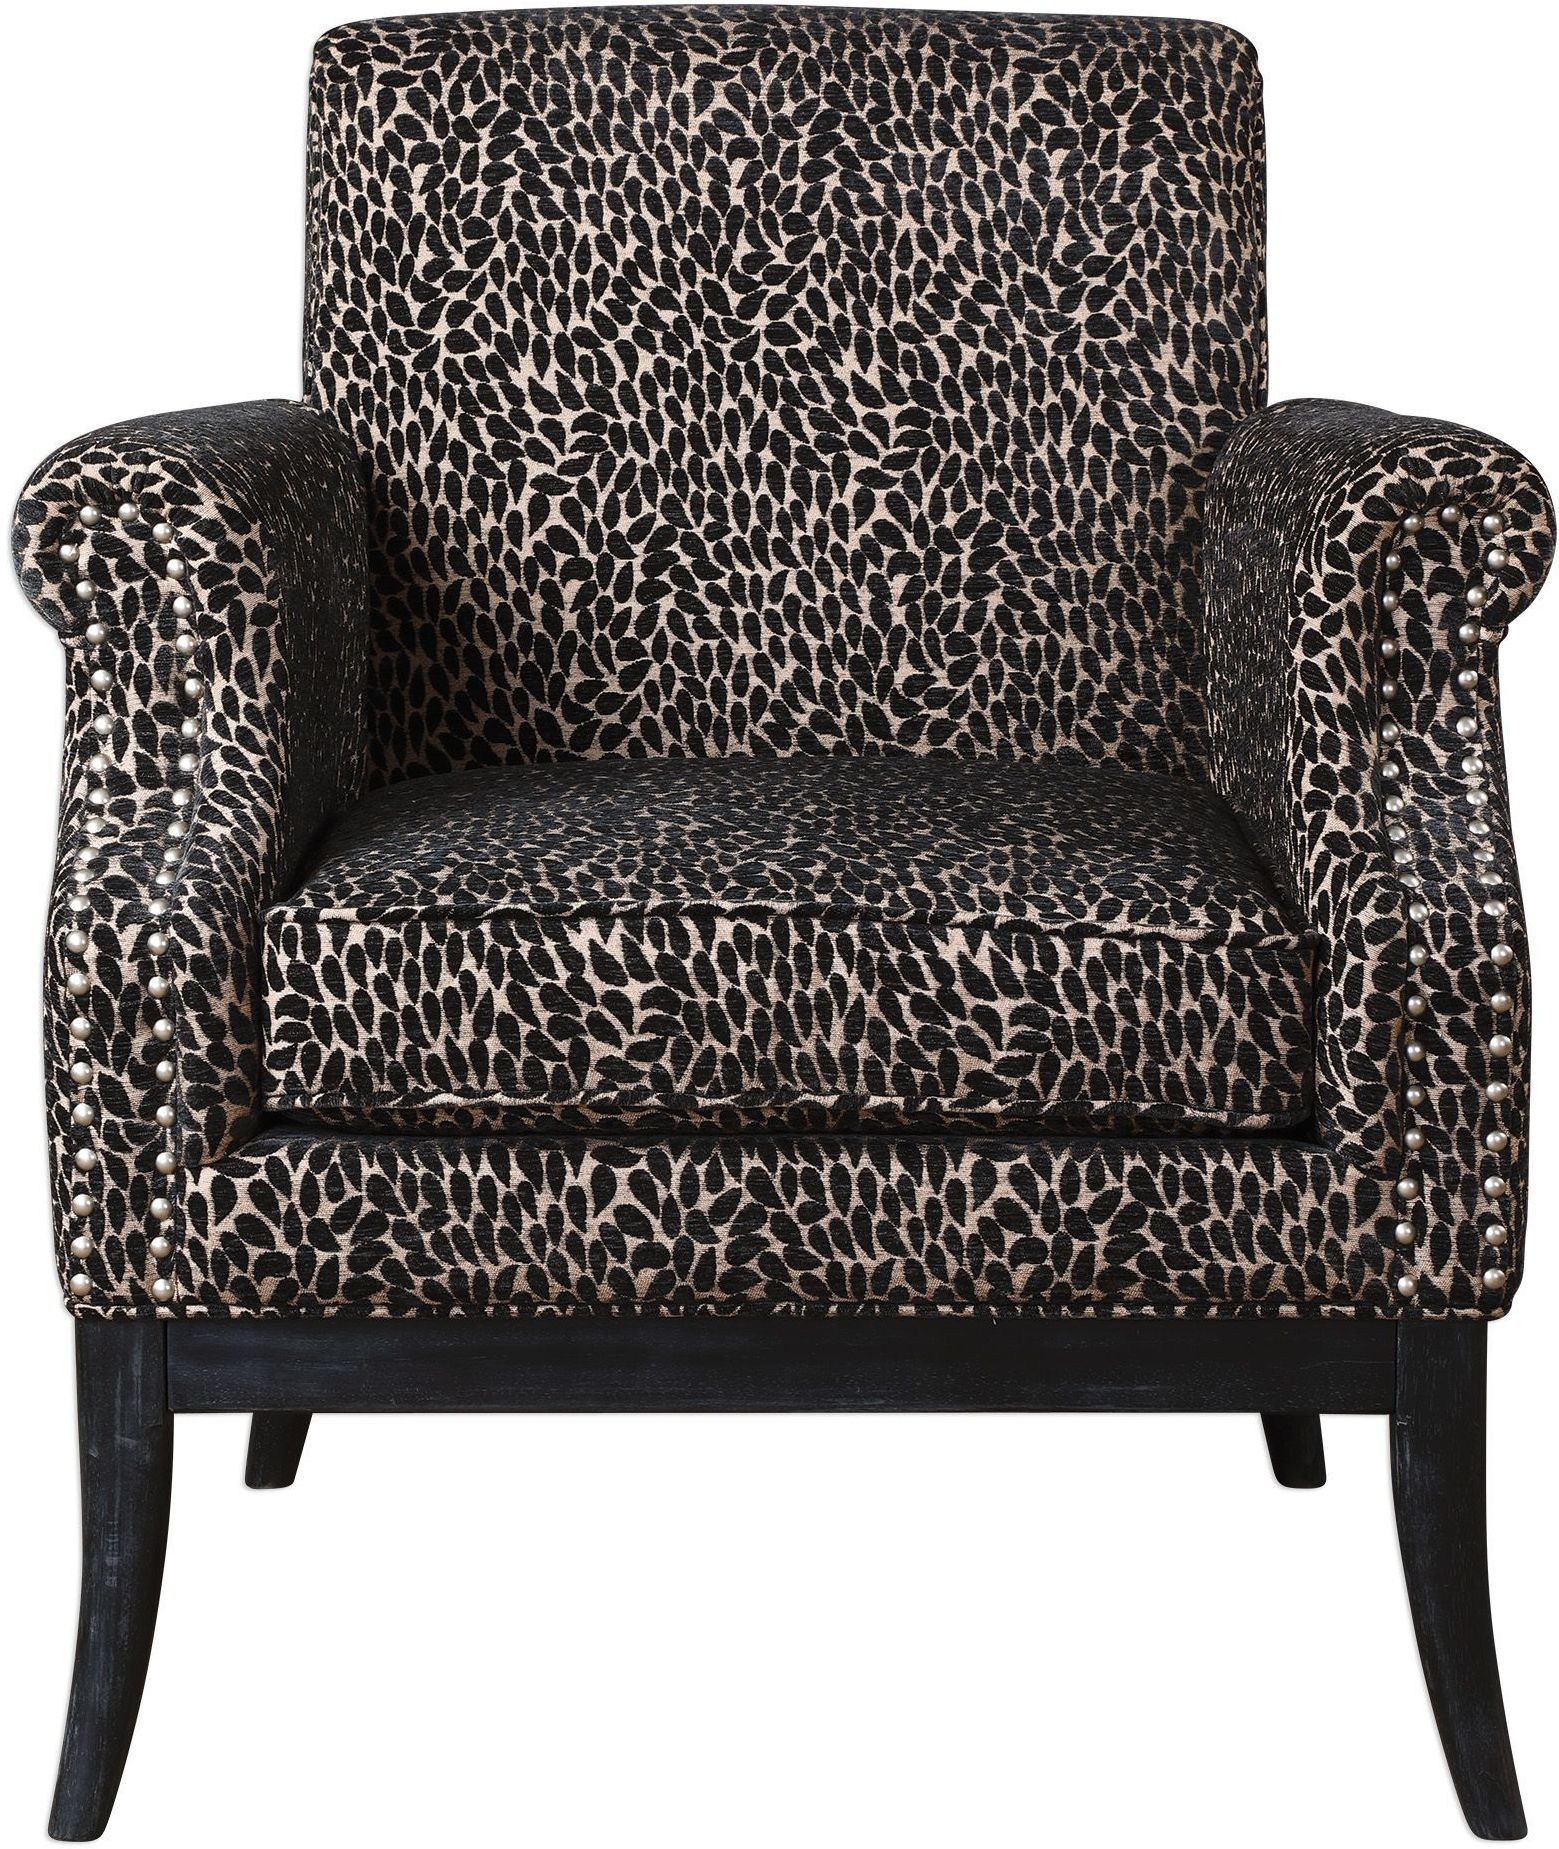 Tan Accent Chair Kaius Tan And Black Accent Chair From Uttermost Coleman